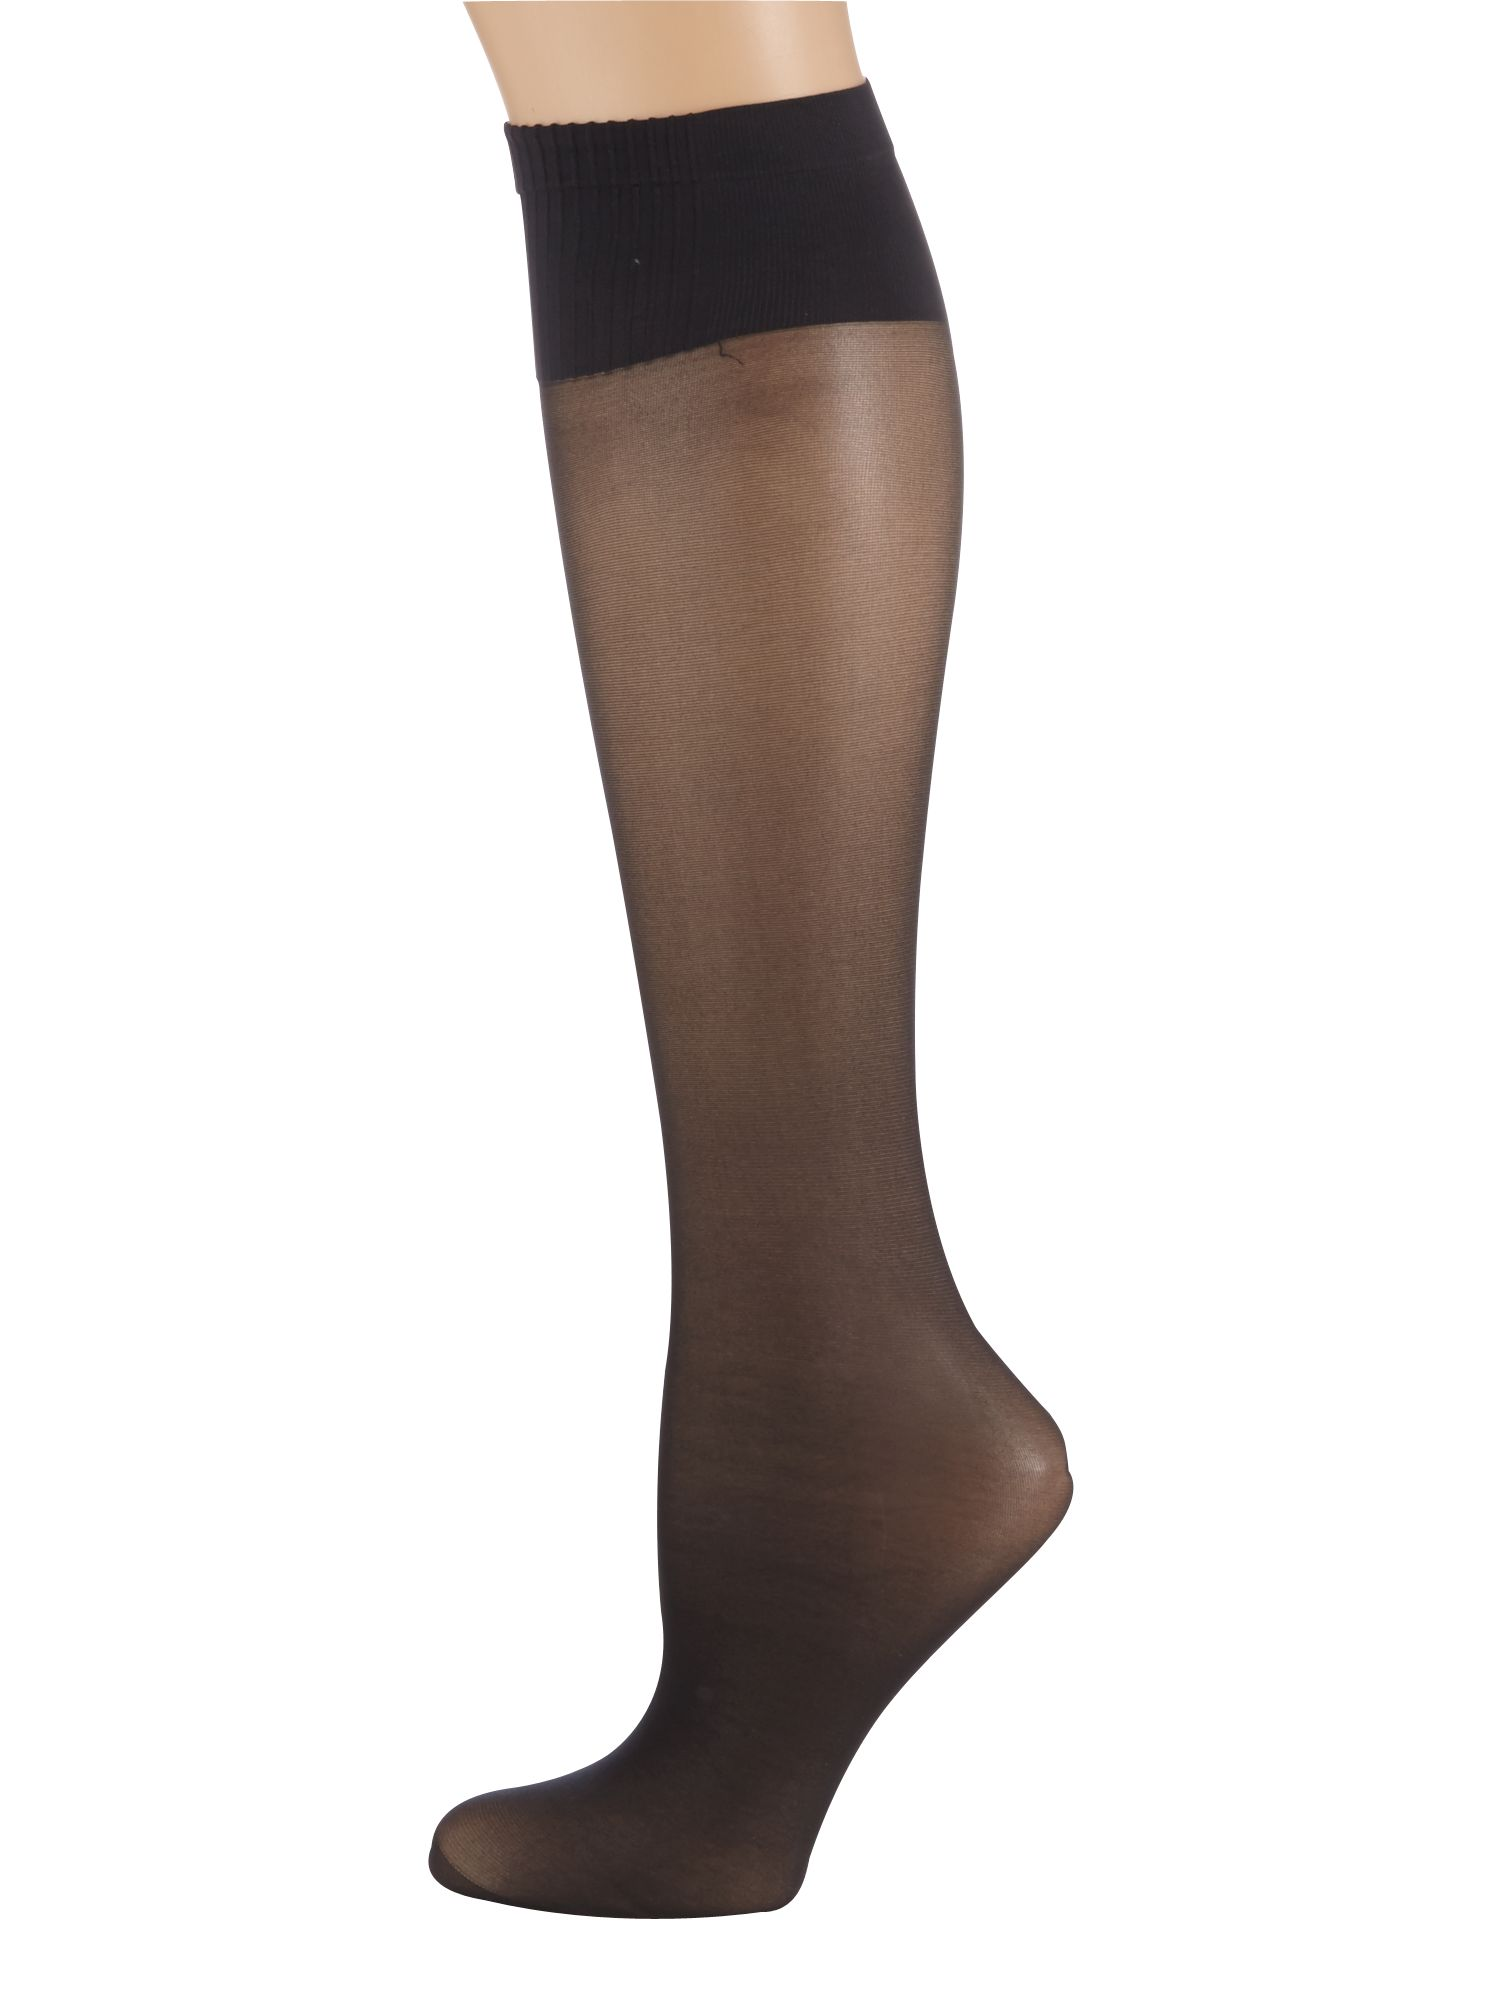 Aristoc 2 pair pack 15 denier support knee high socks Black